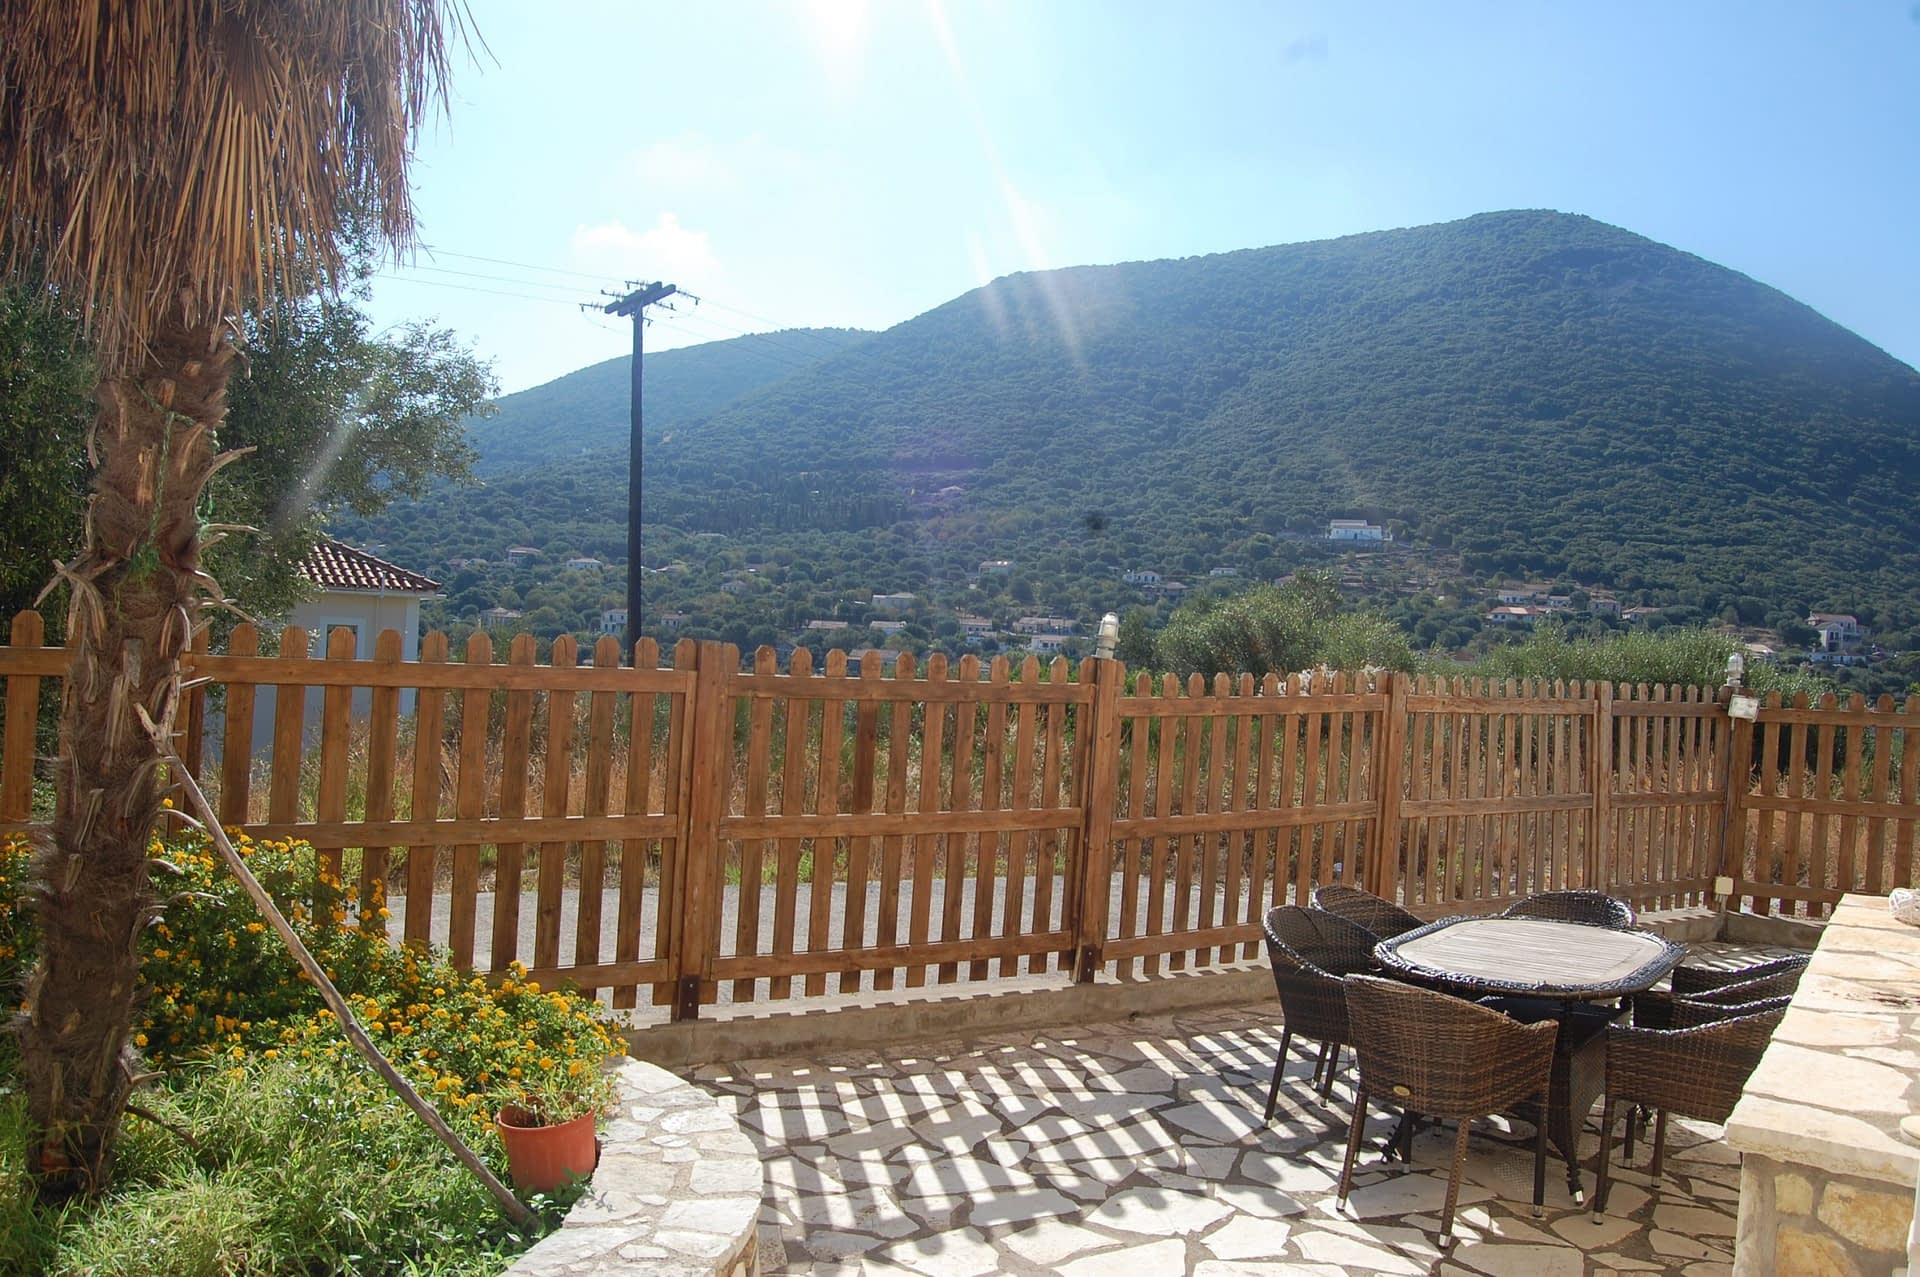 Apartment complex for sale in Ithaca Greece with exterior view